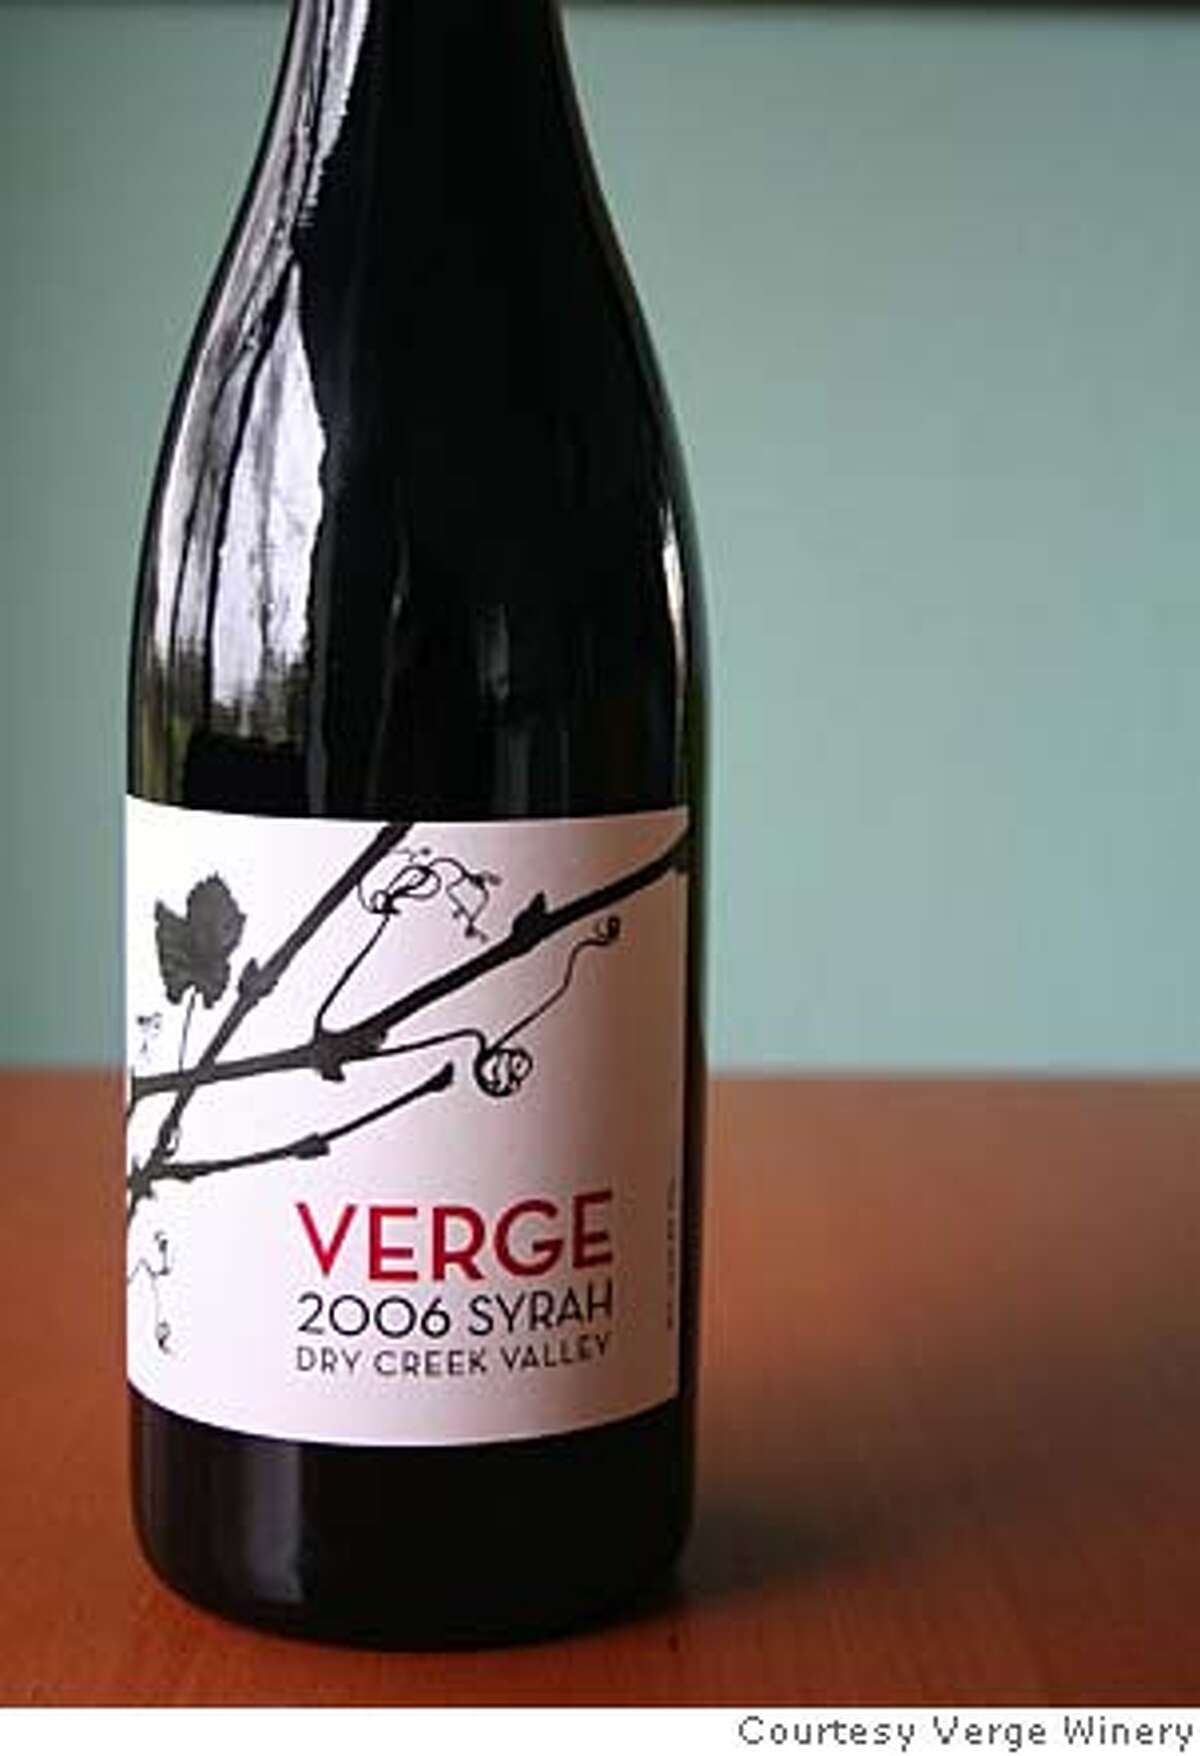 The premier release from Verge Winery.